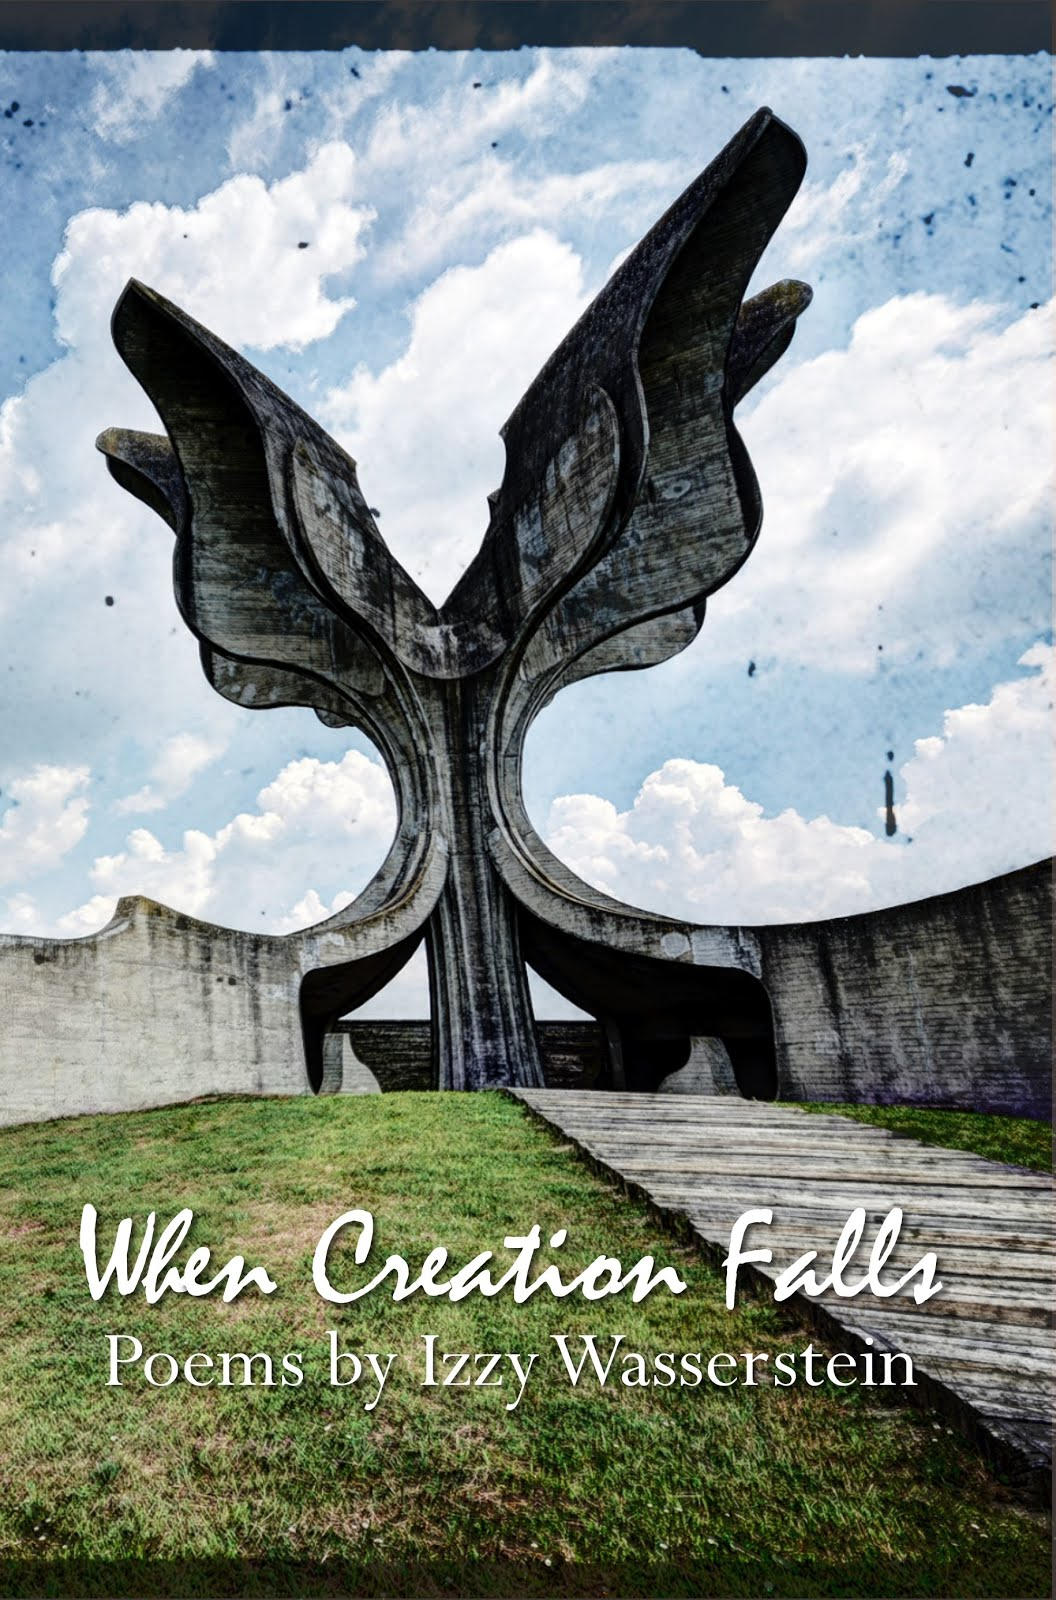 When Creation Falls